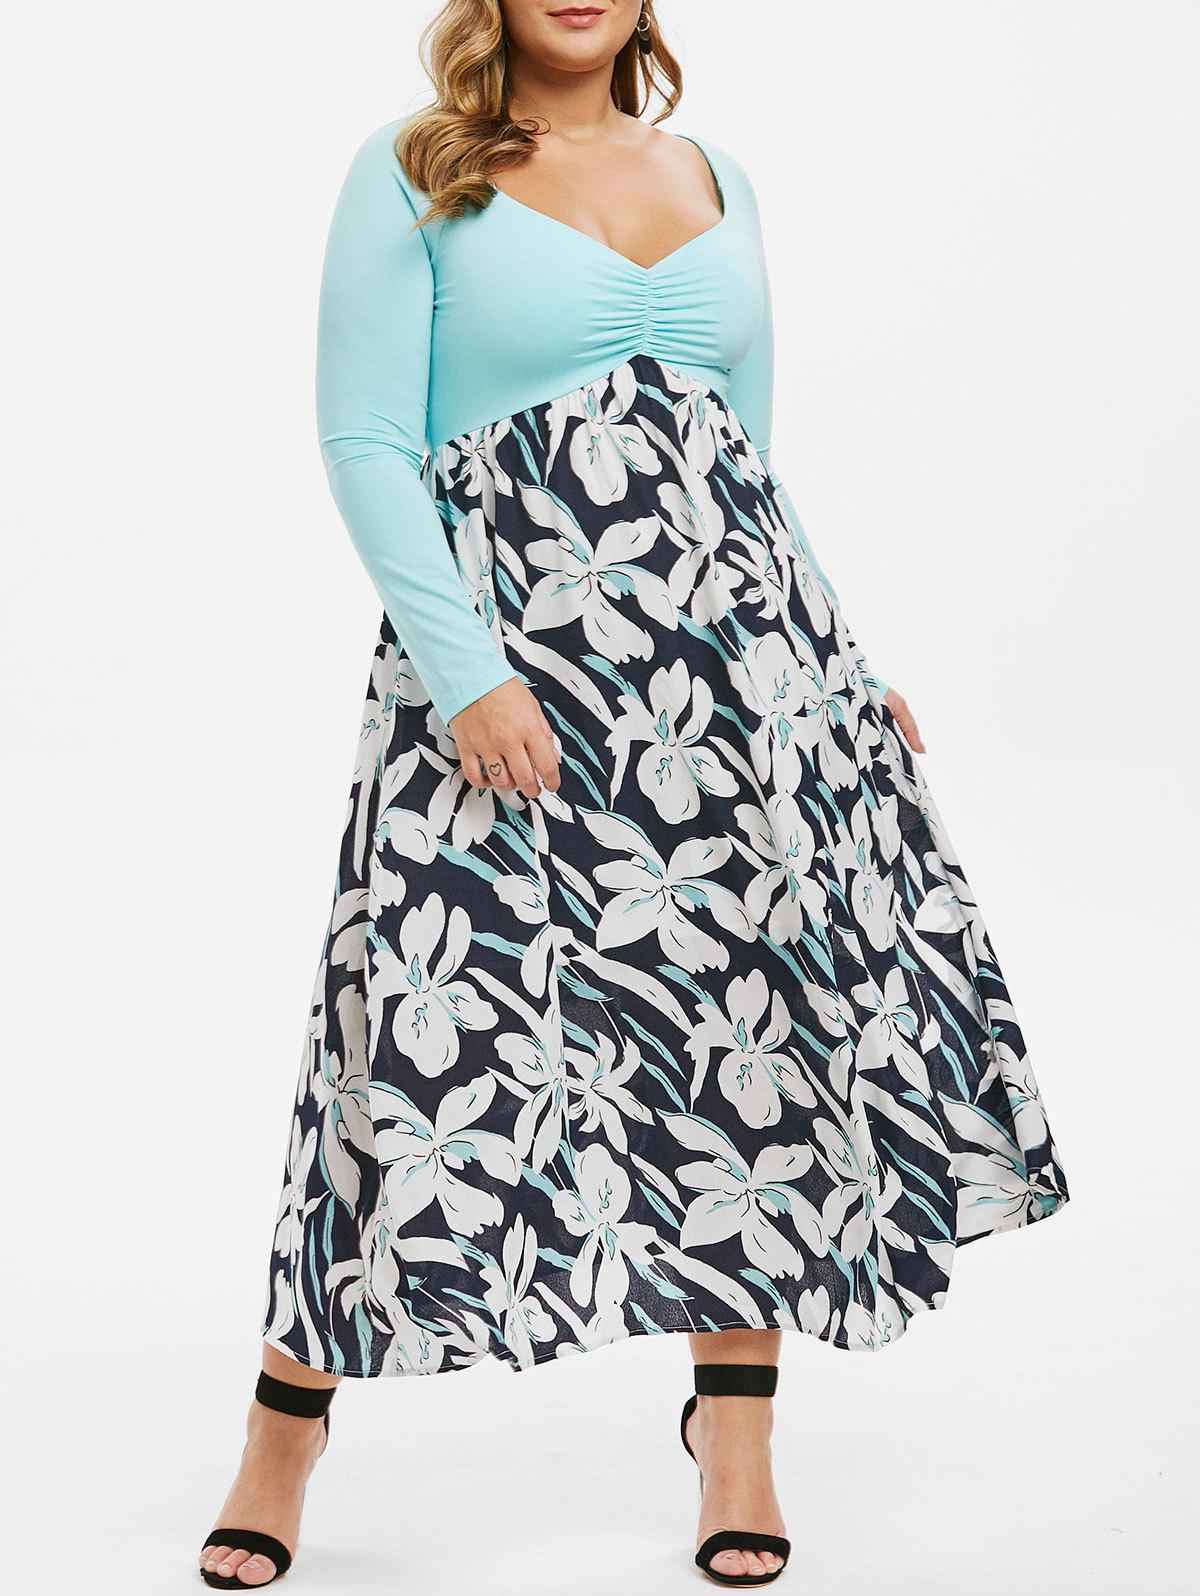 Plus Size Raglan Sleeve Pleated Front Floral Dress - multicolor 3X